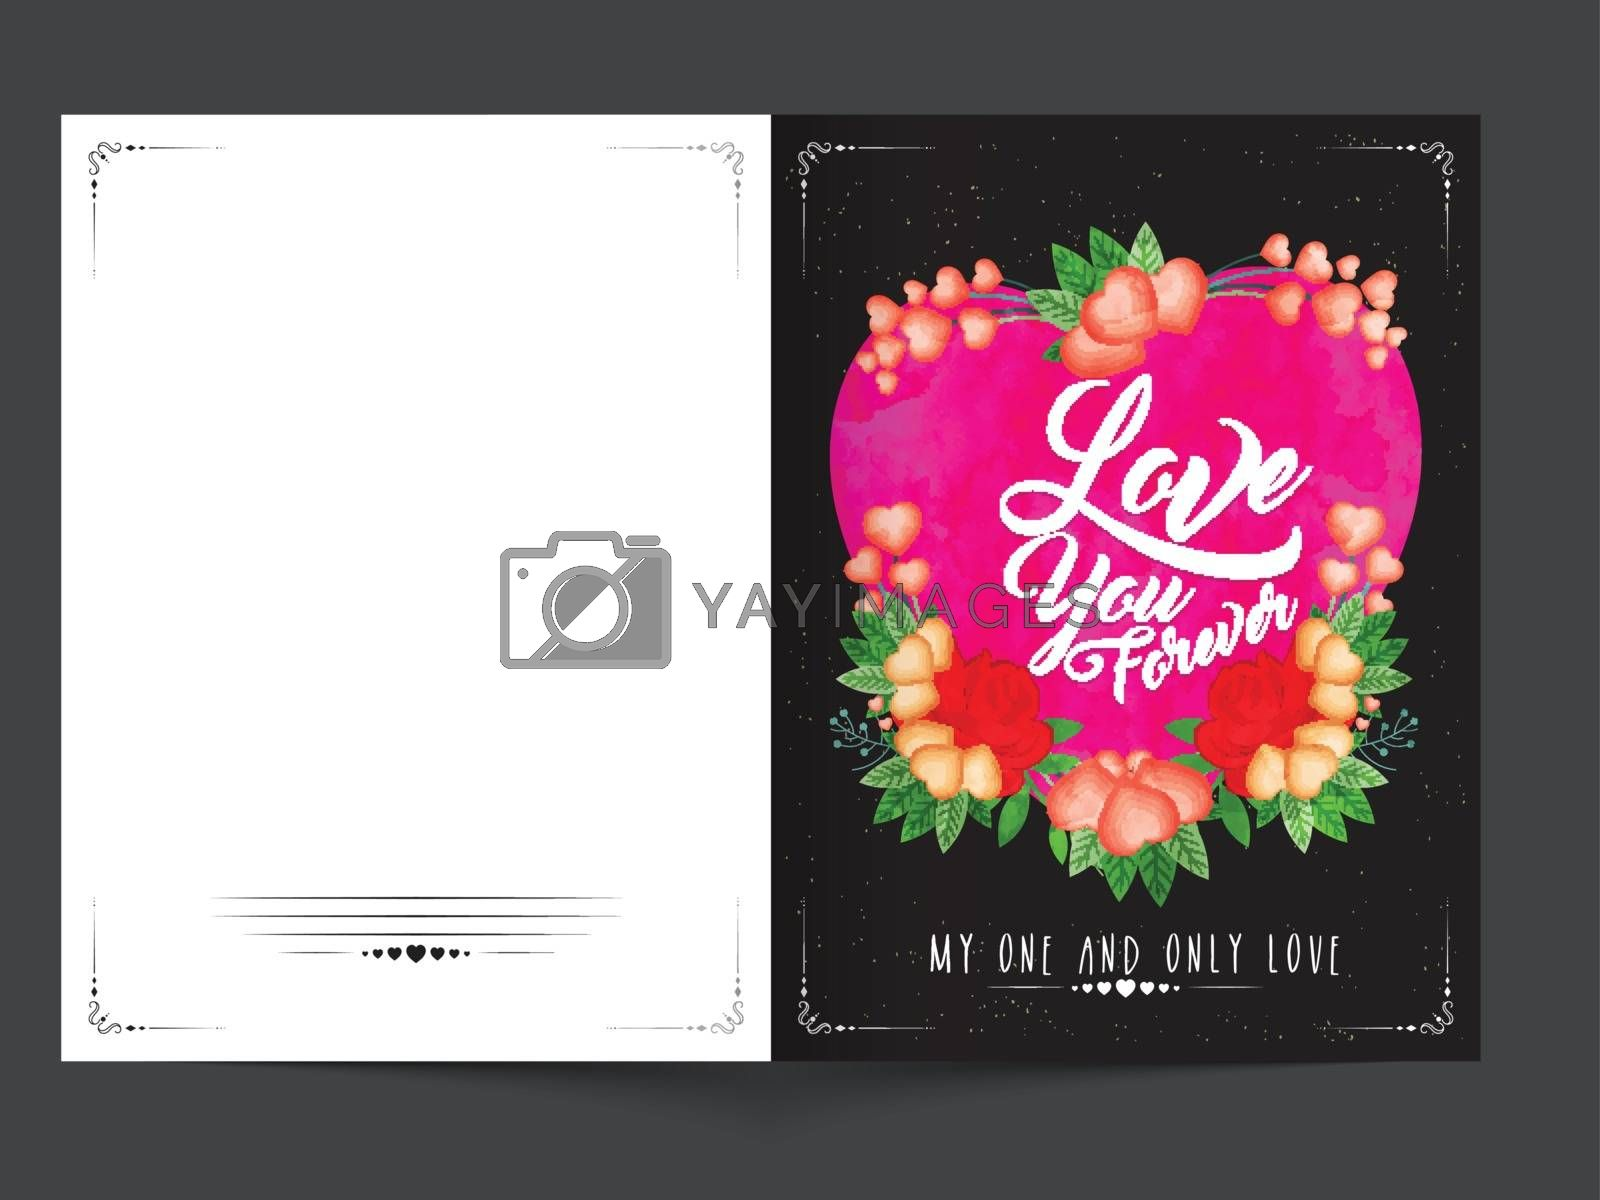 Greeting card for Valentine's Day Celebration. by aispl